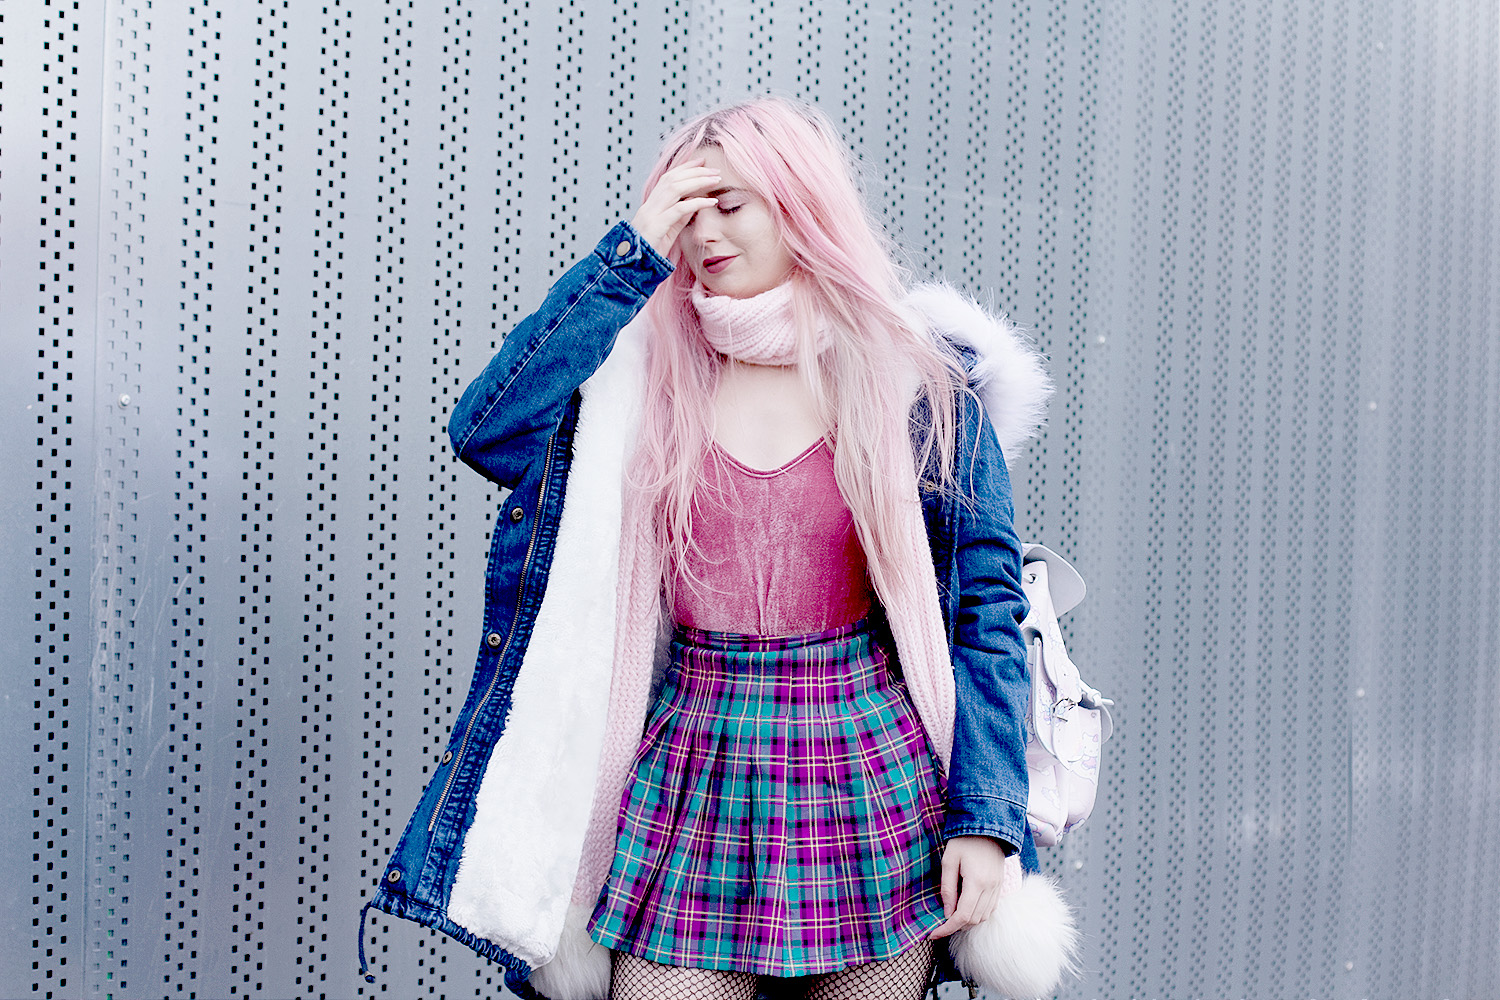 ITS FLUFFY PARKA WEATHER